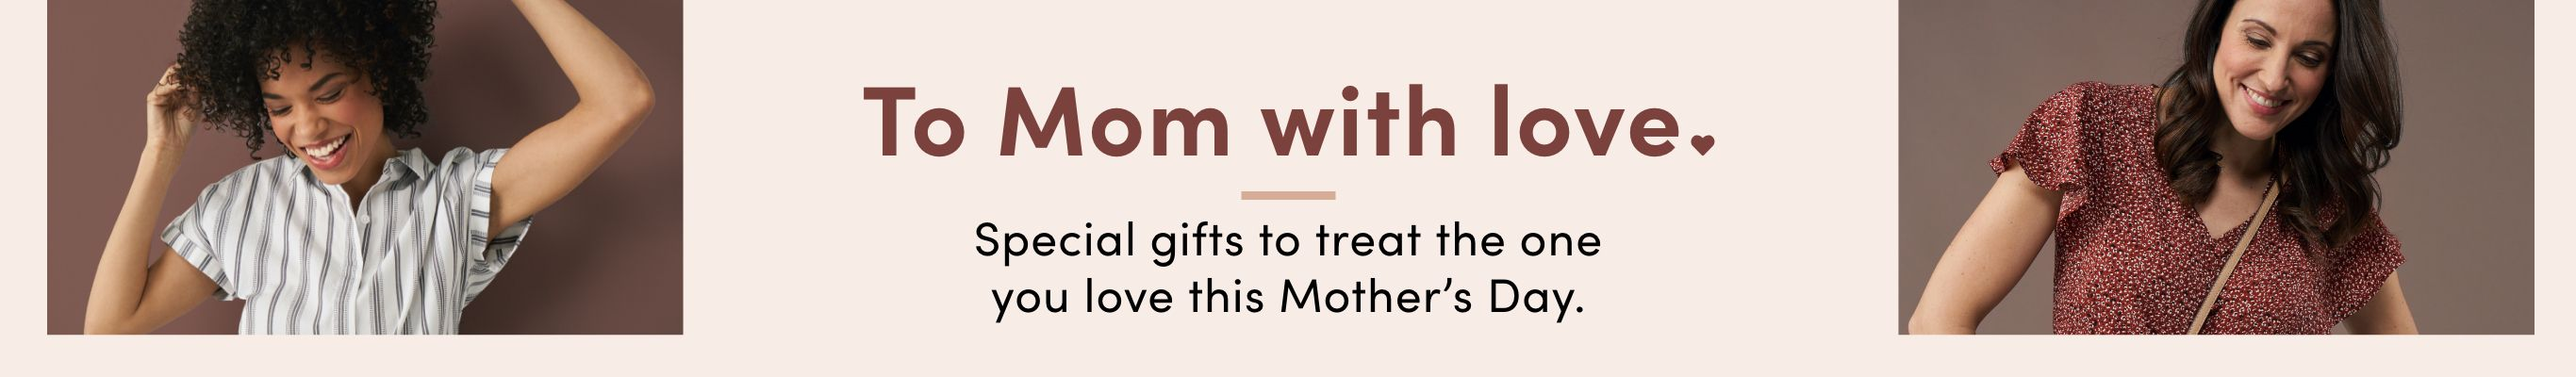 To Mom with Love. Special gifts to treat the one you love this Mother's Day